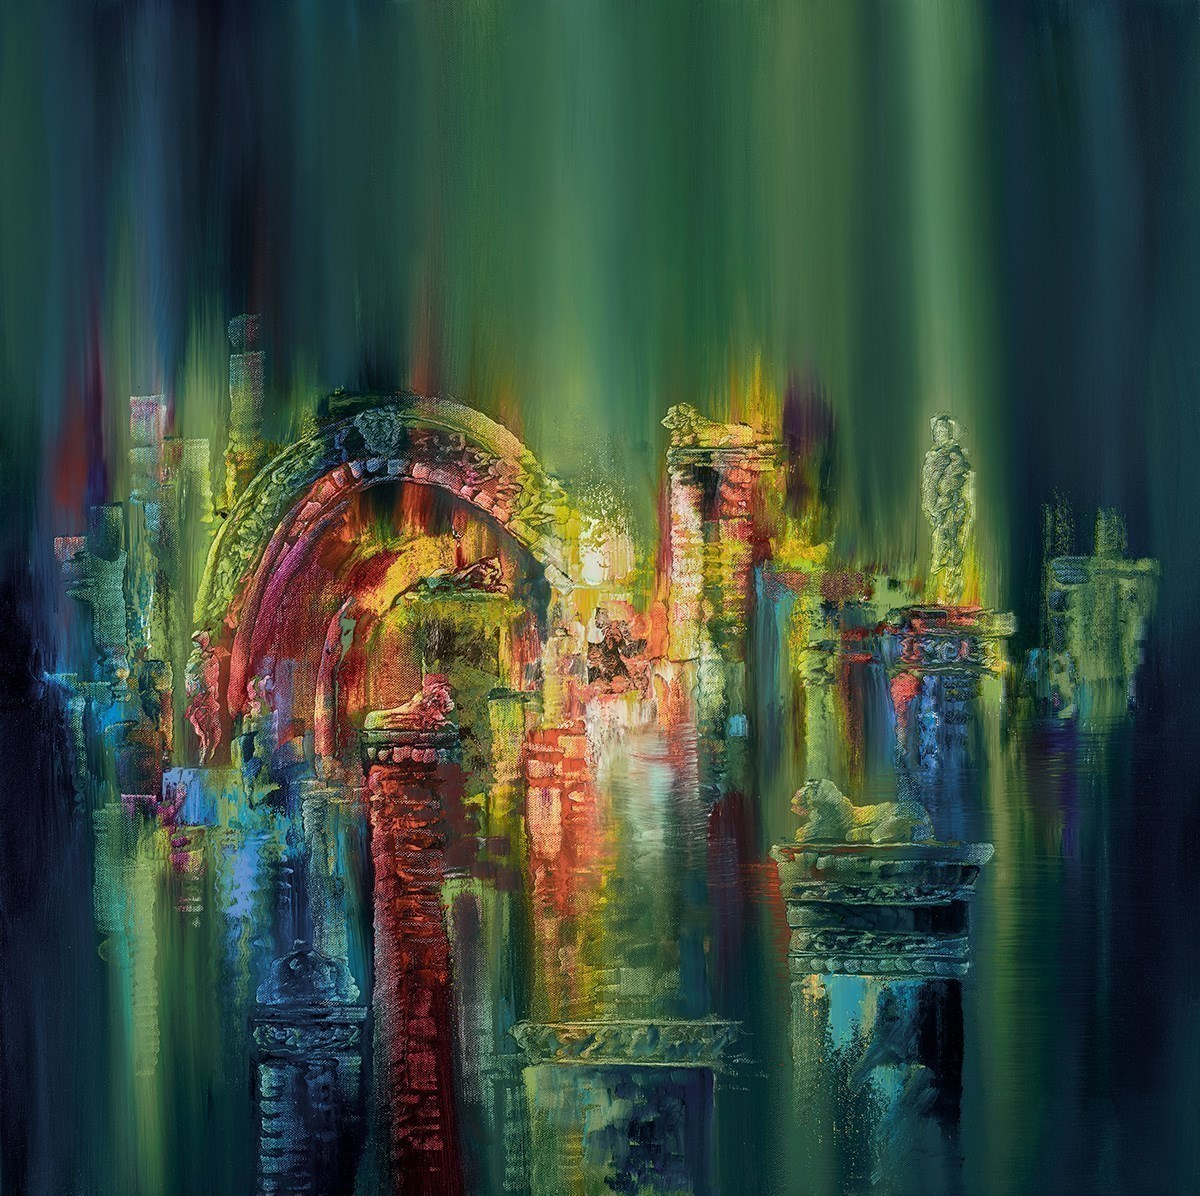 The Lost City by Philip Gray - Hand Finished Limited Edition on Canvas sized 20x20 inches. Available from Whitewall Galleries